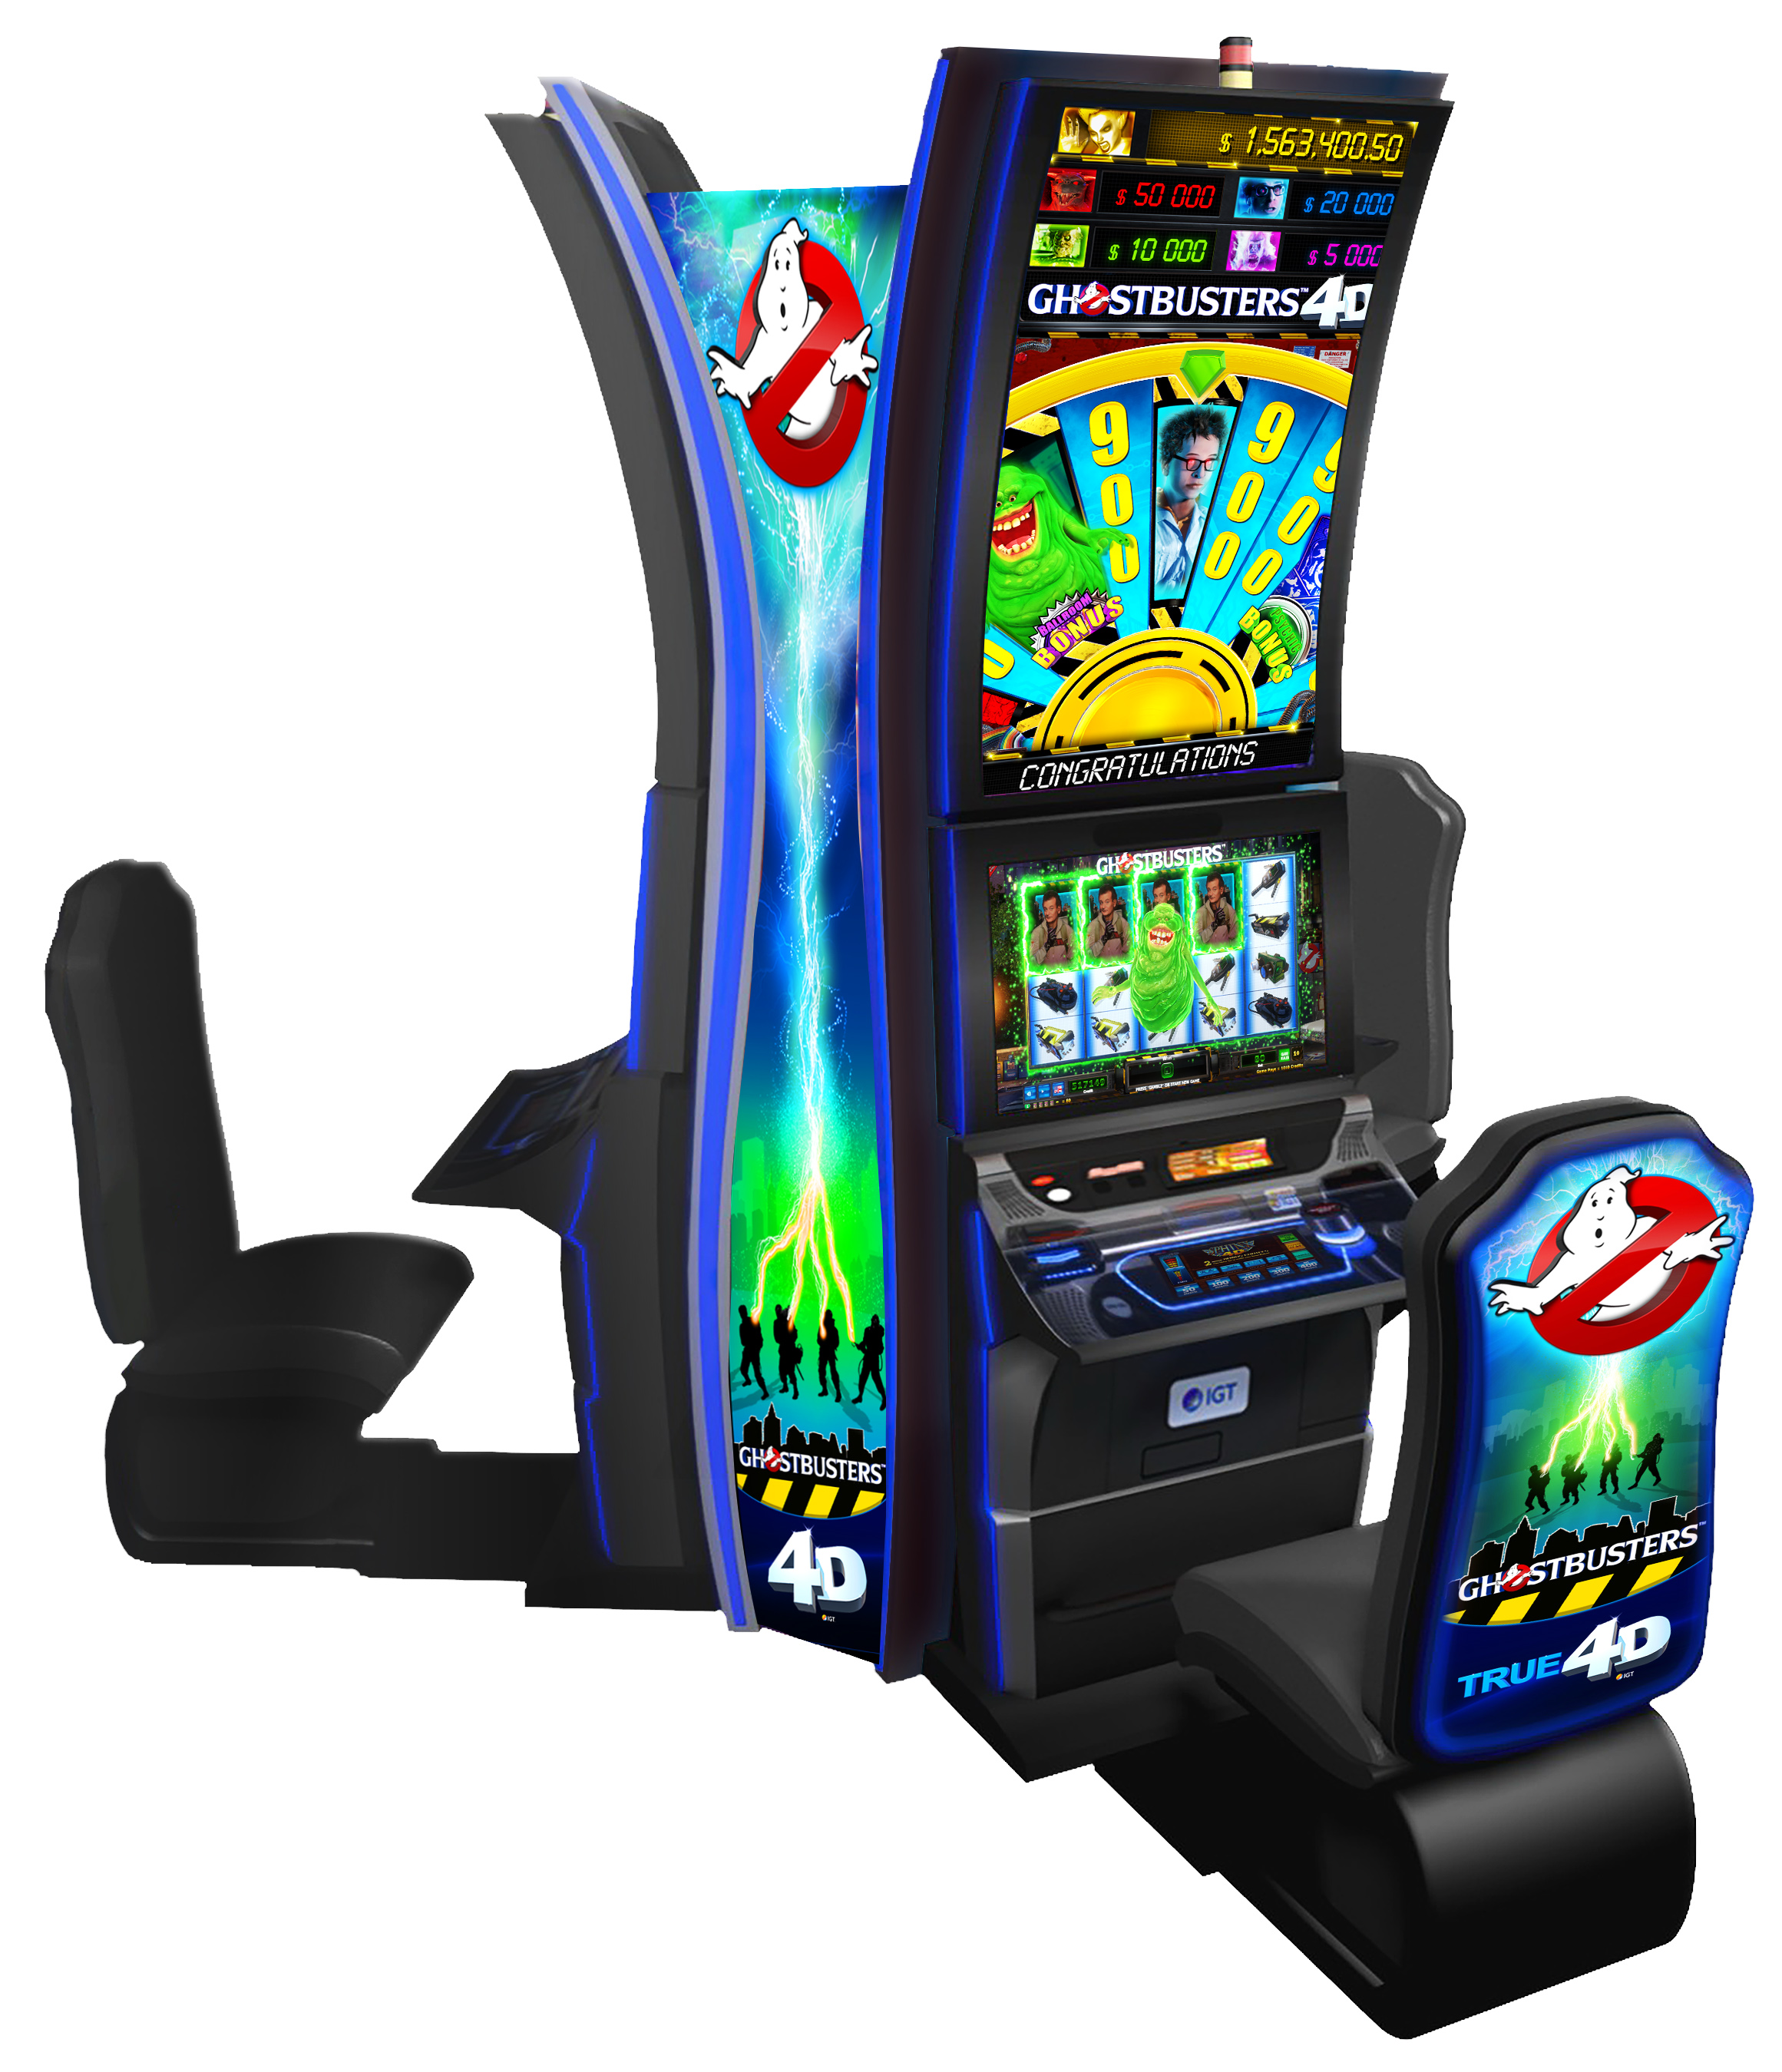 Ghostbusters 4d Slot Machine